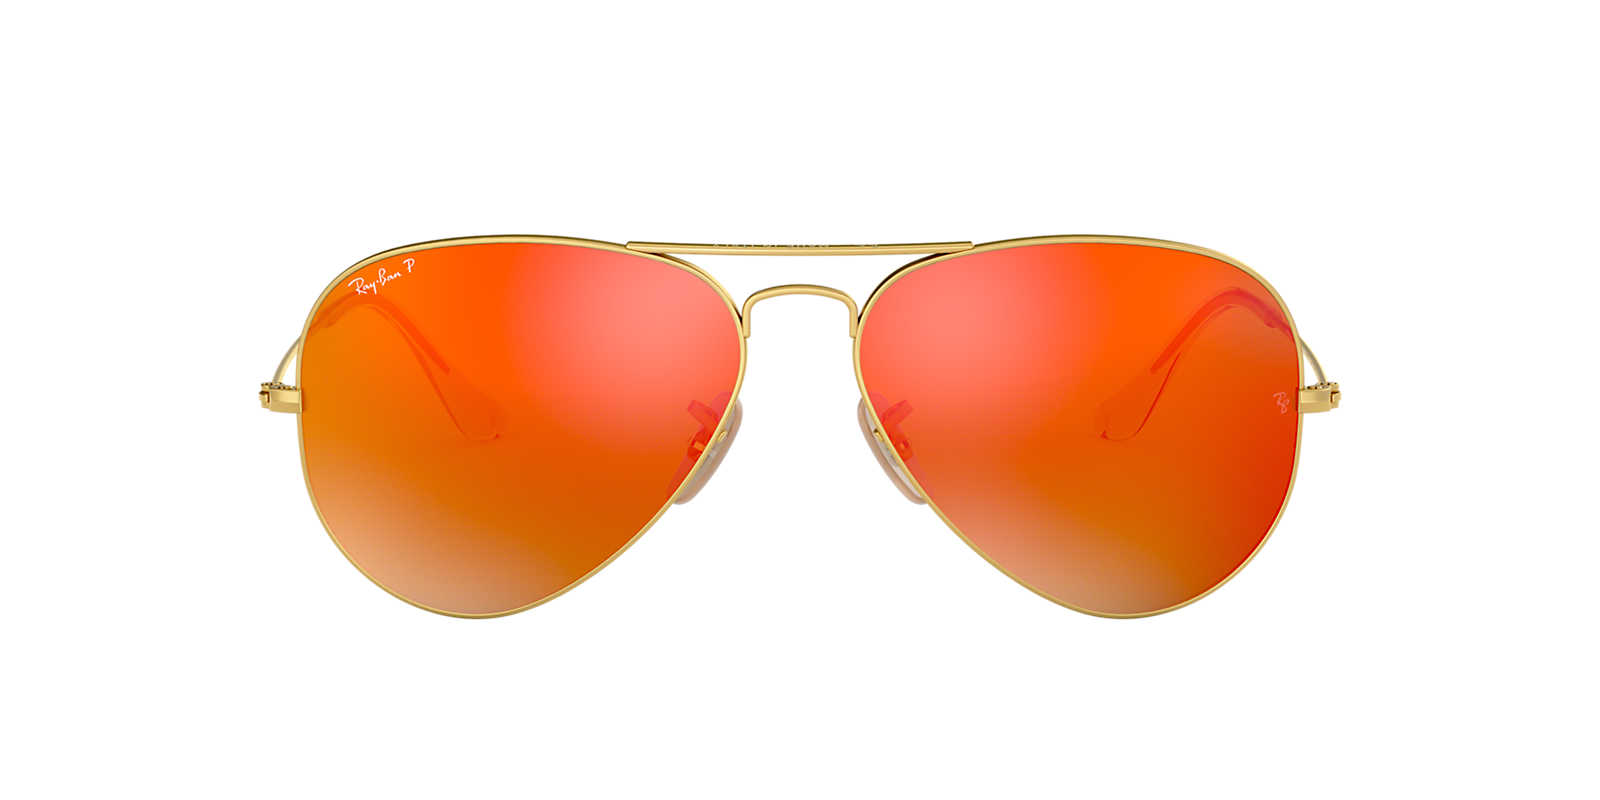 ray ban flash lenses  rb3025 58 original aviator rb3025 58 original aviator · ray ban